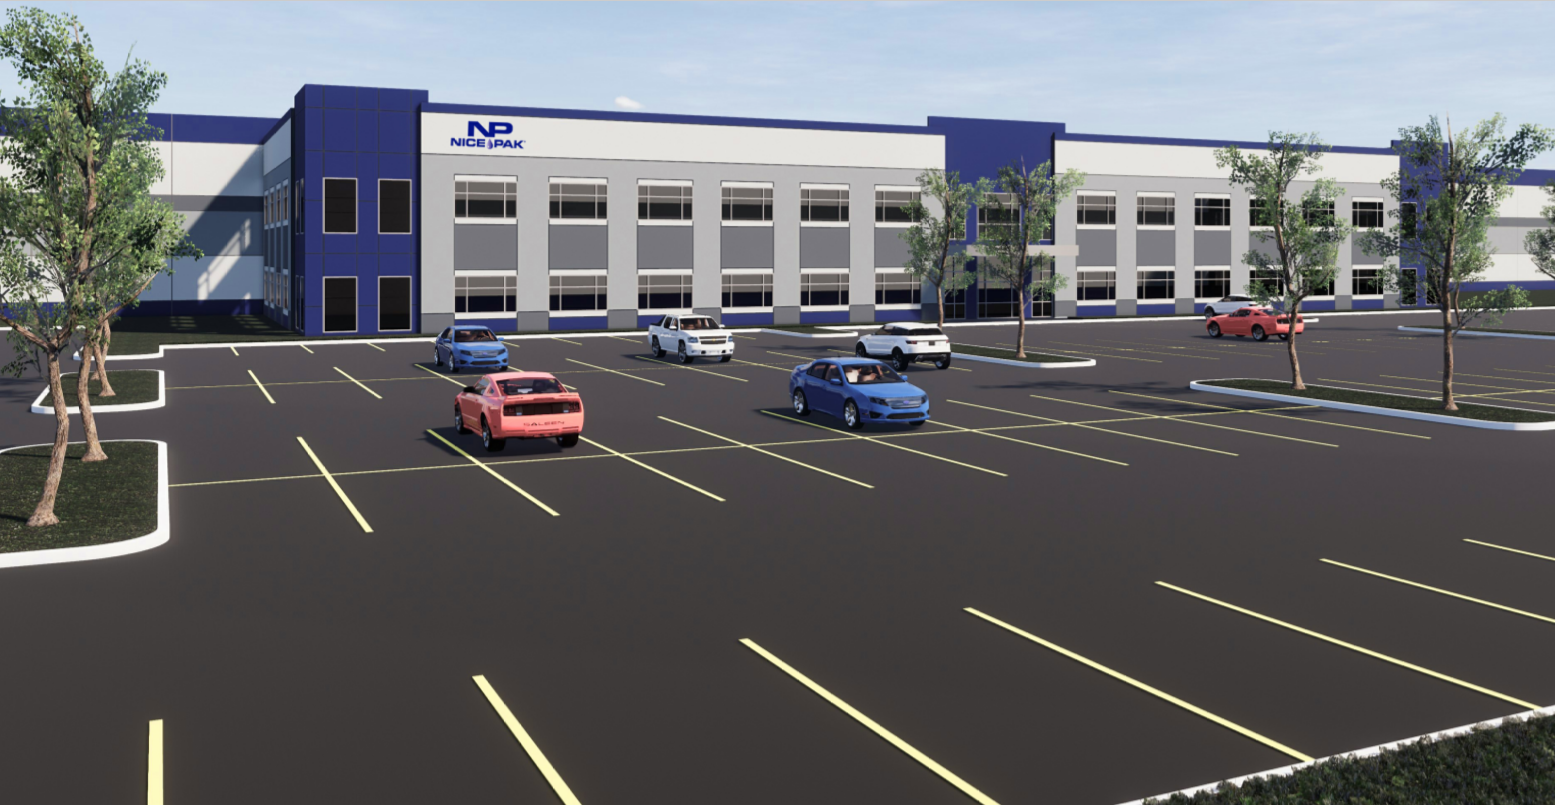 Nice-Pak Announces Plans to Construct New Facility in Mooresville